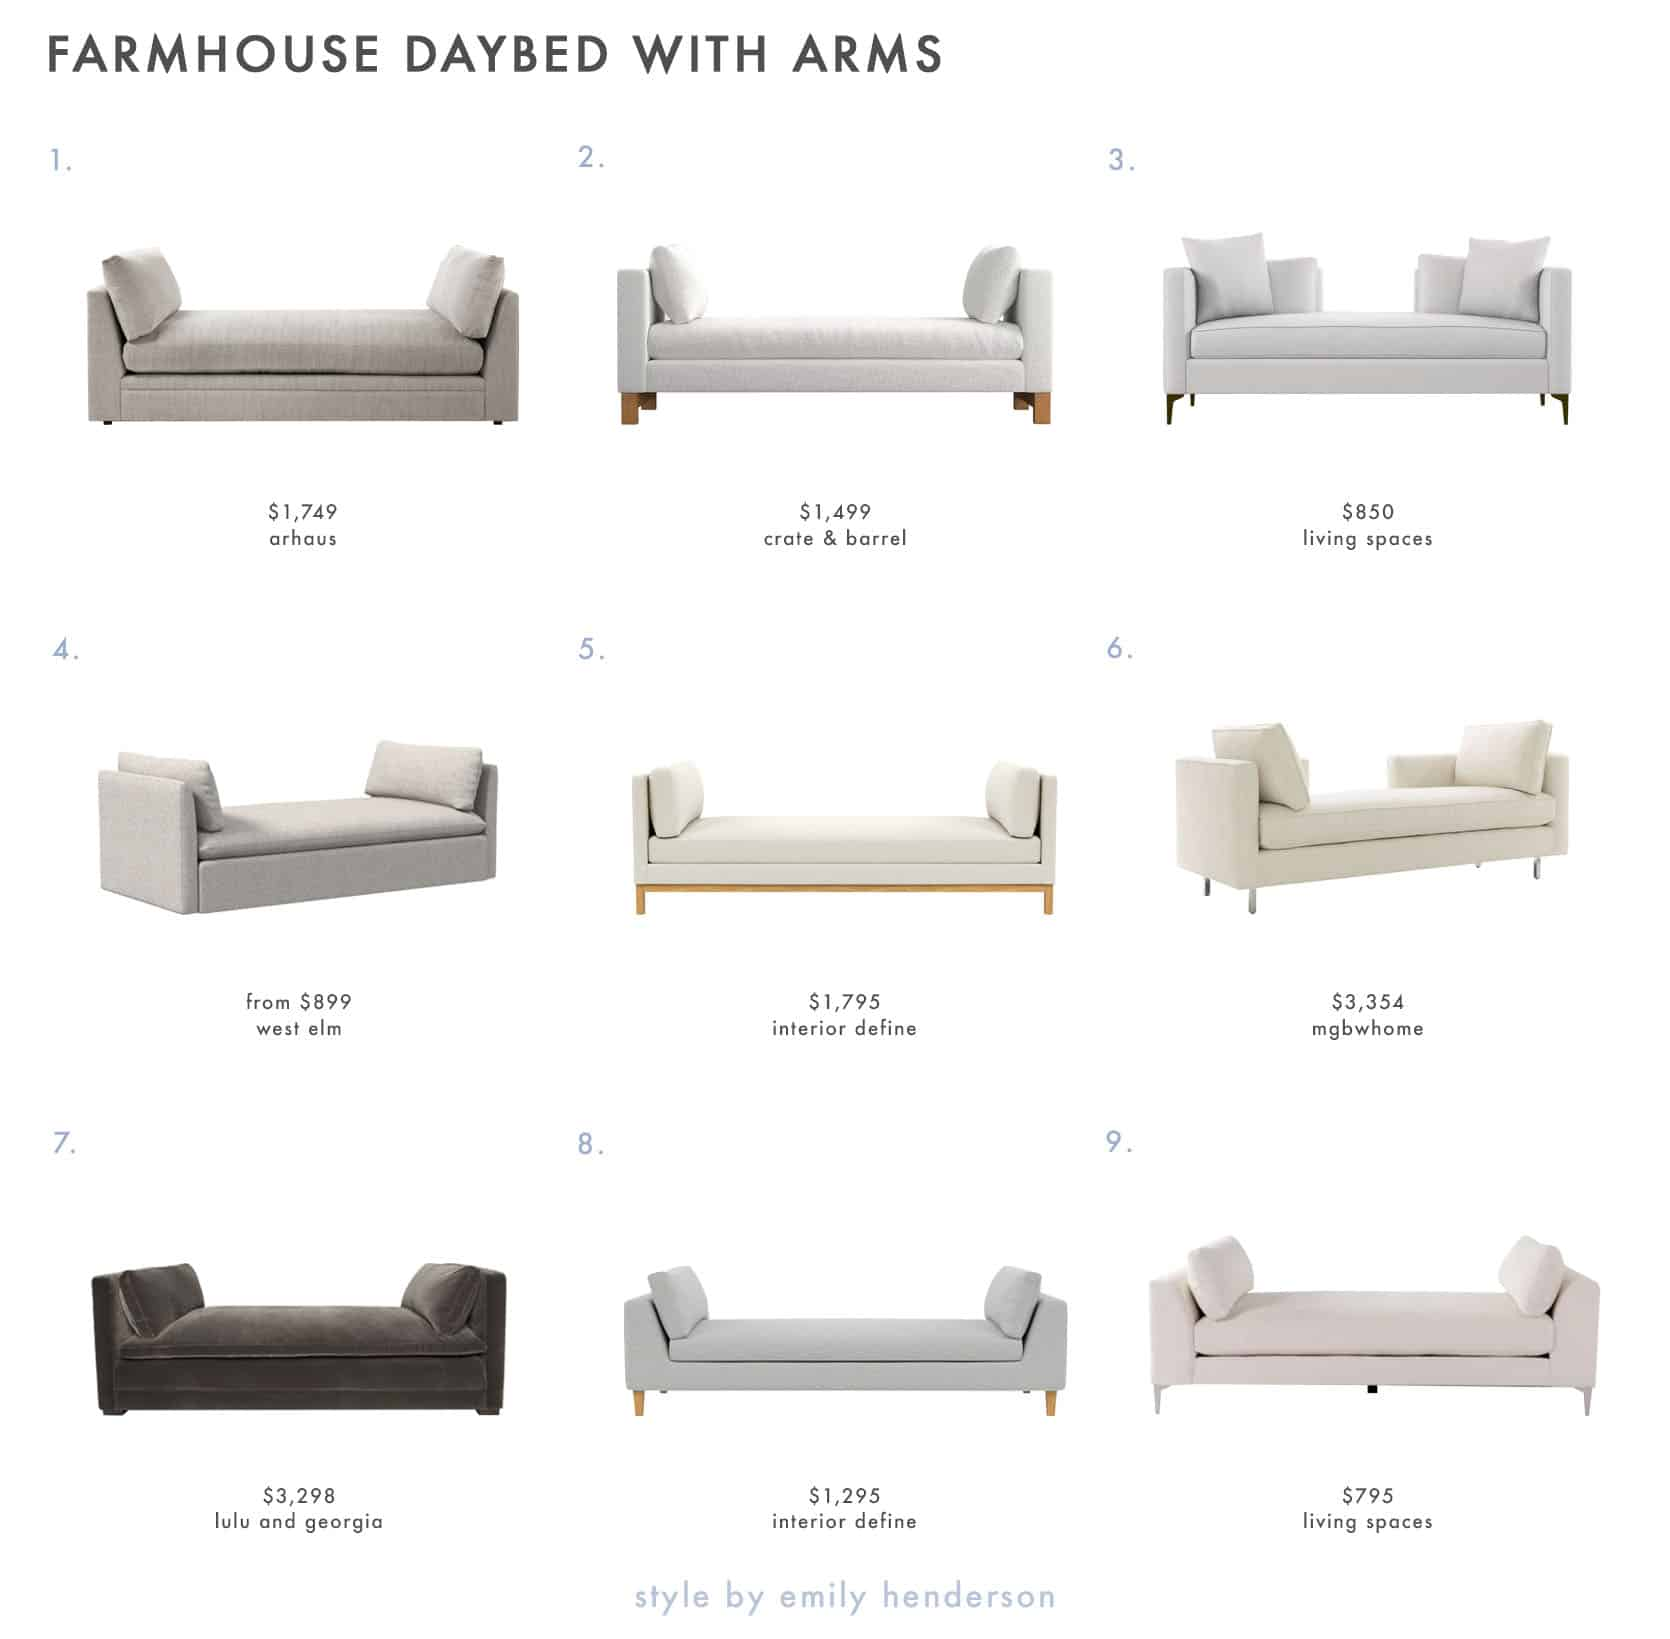 Emily Henderson Farmhouse Shopping List Daybeds Arms